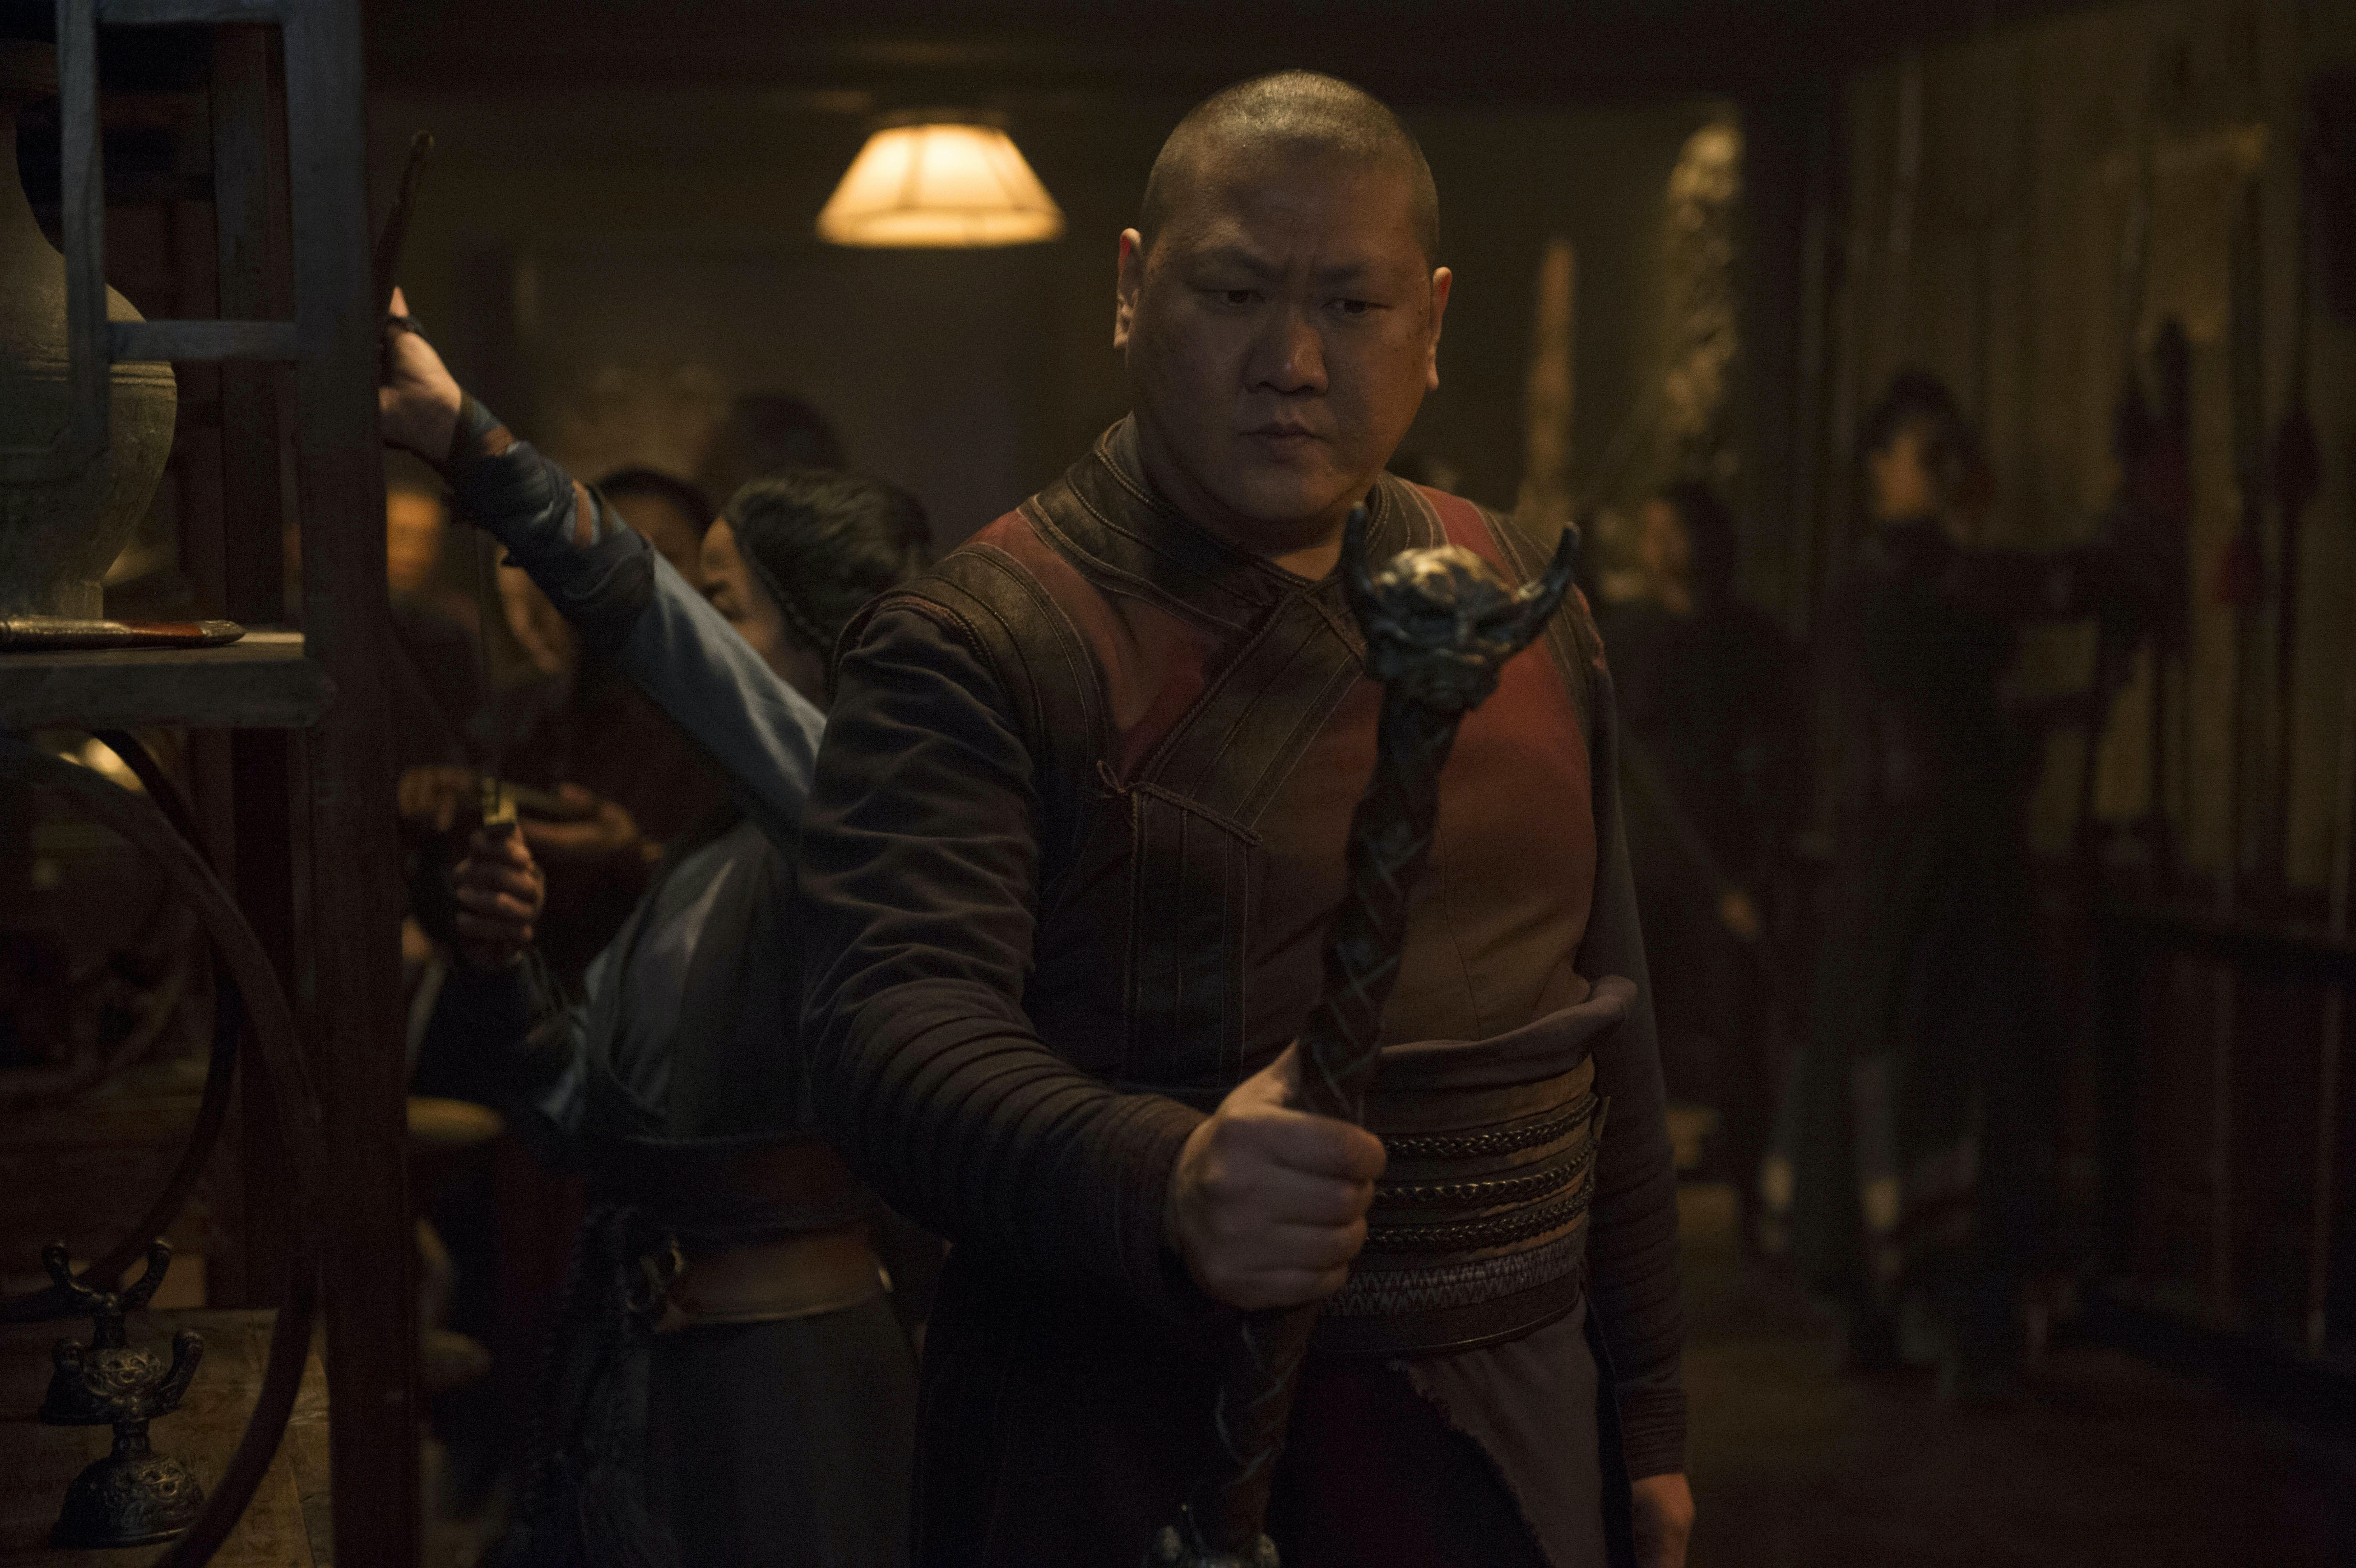 Wong (Benedict Wong) wielding the Wand of Watoomb.